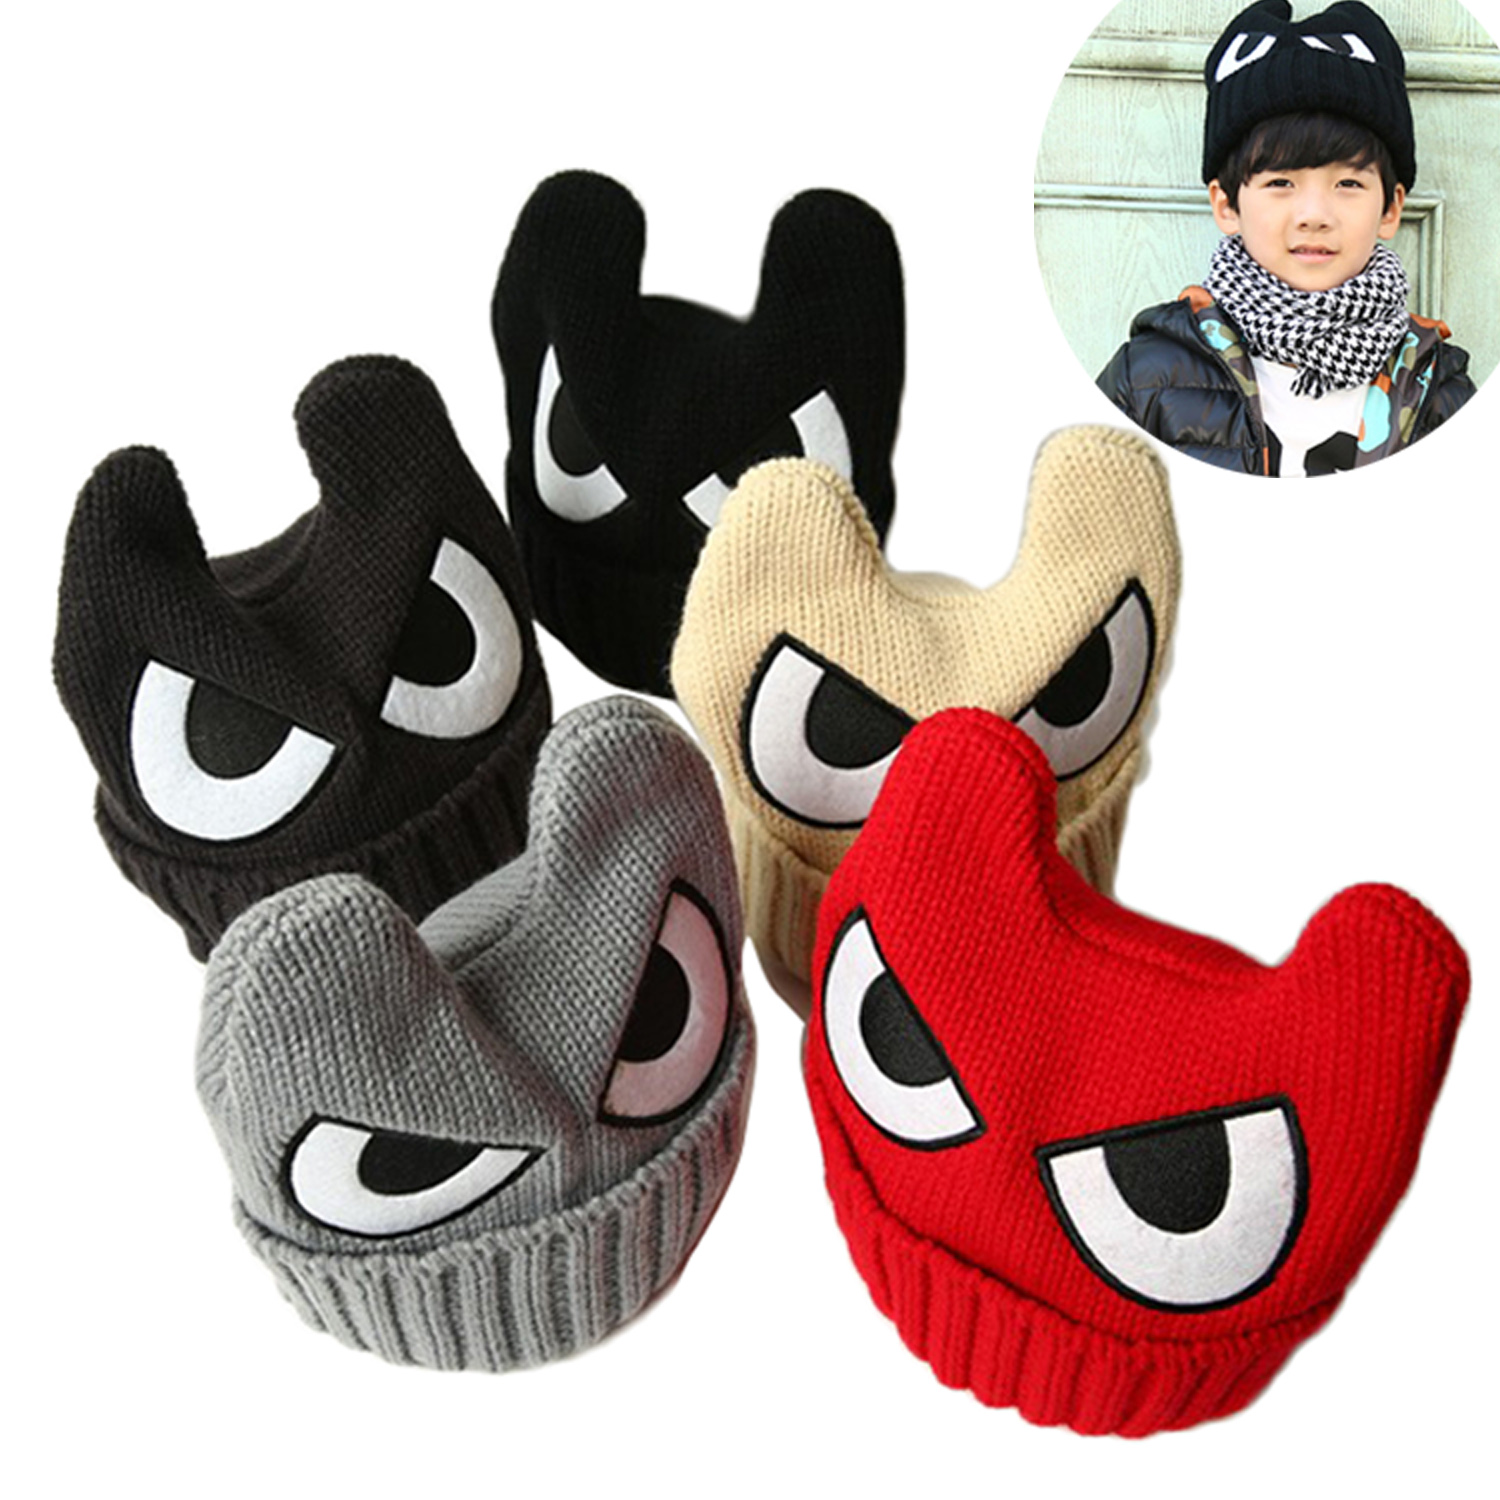 2016 New Arrival Autumn Winter Hats Children Knitted Skullies Wool Cap Eyes Baby Warm Hat Horn Boy Girl Beanies